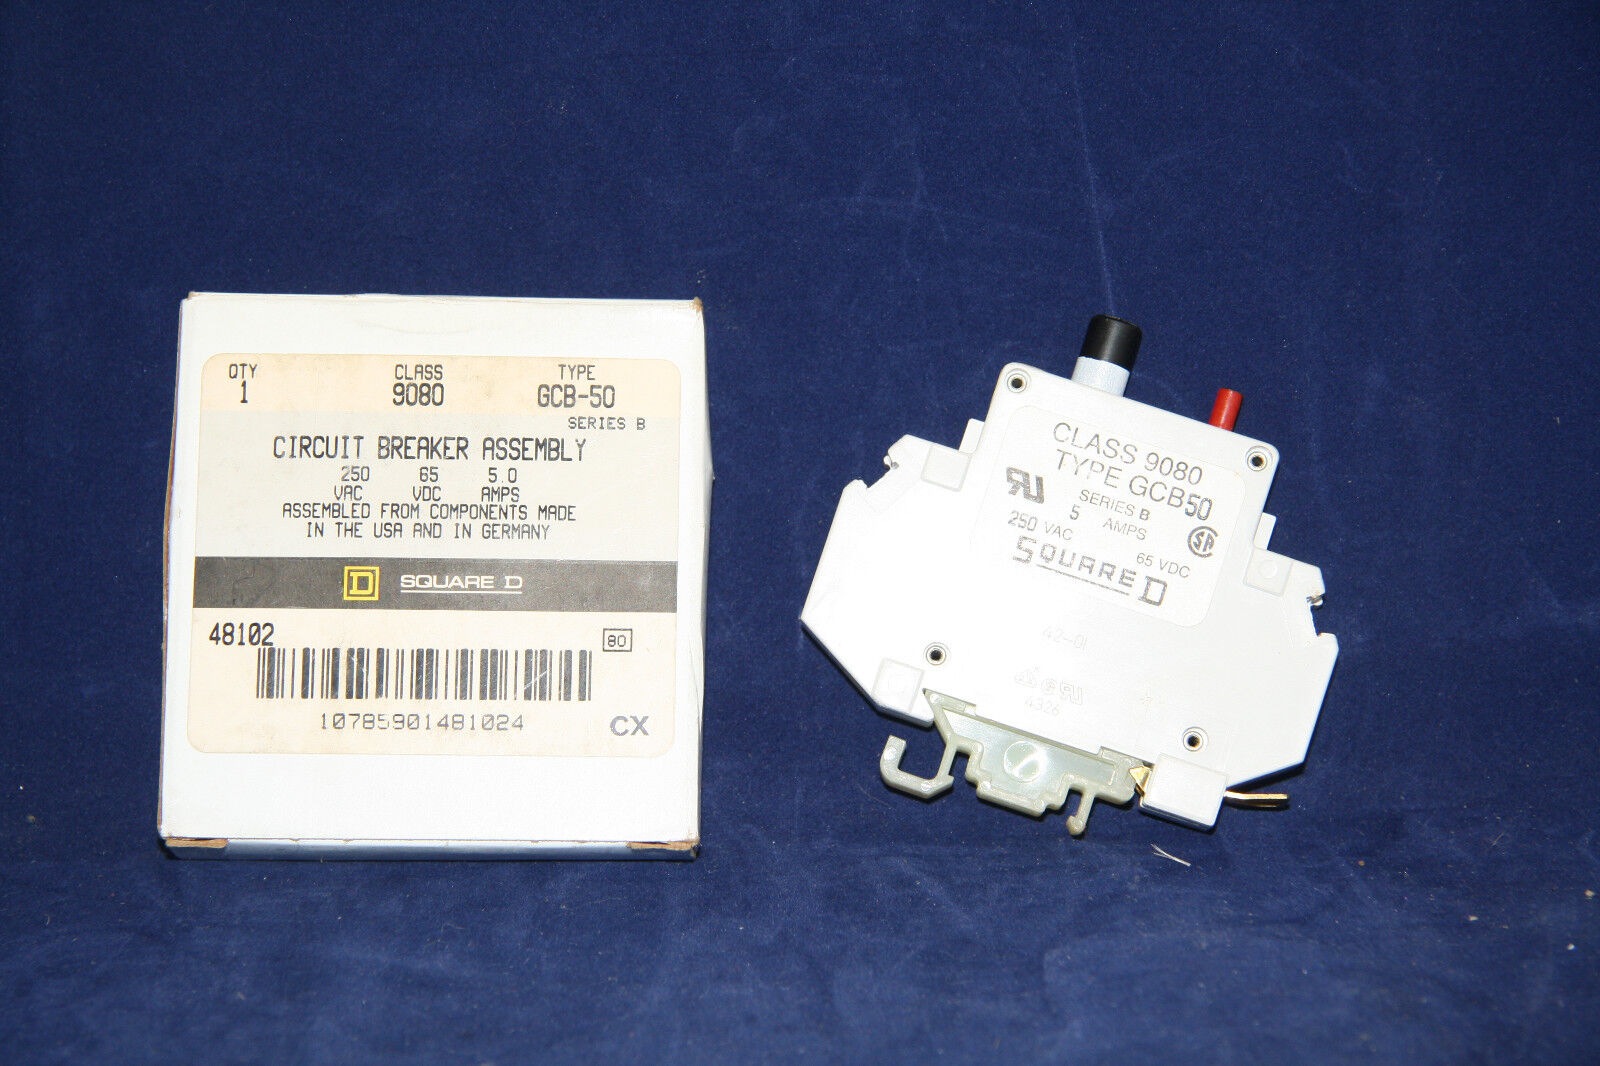 Square D Breaker Assembly Part # 9080-GCB-20